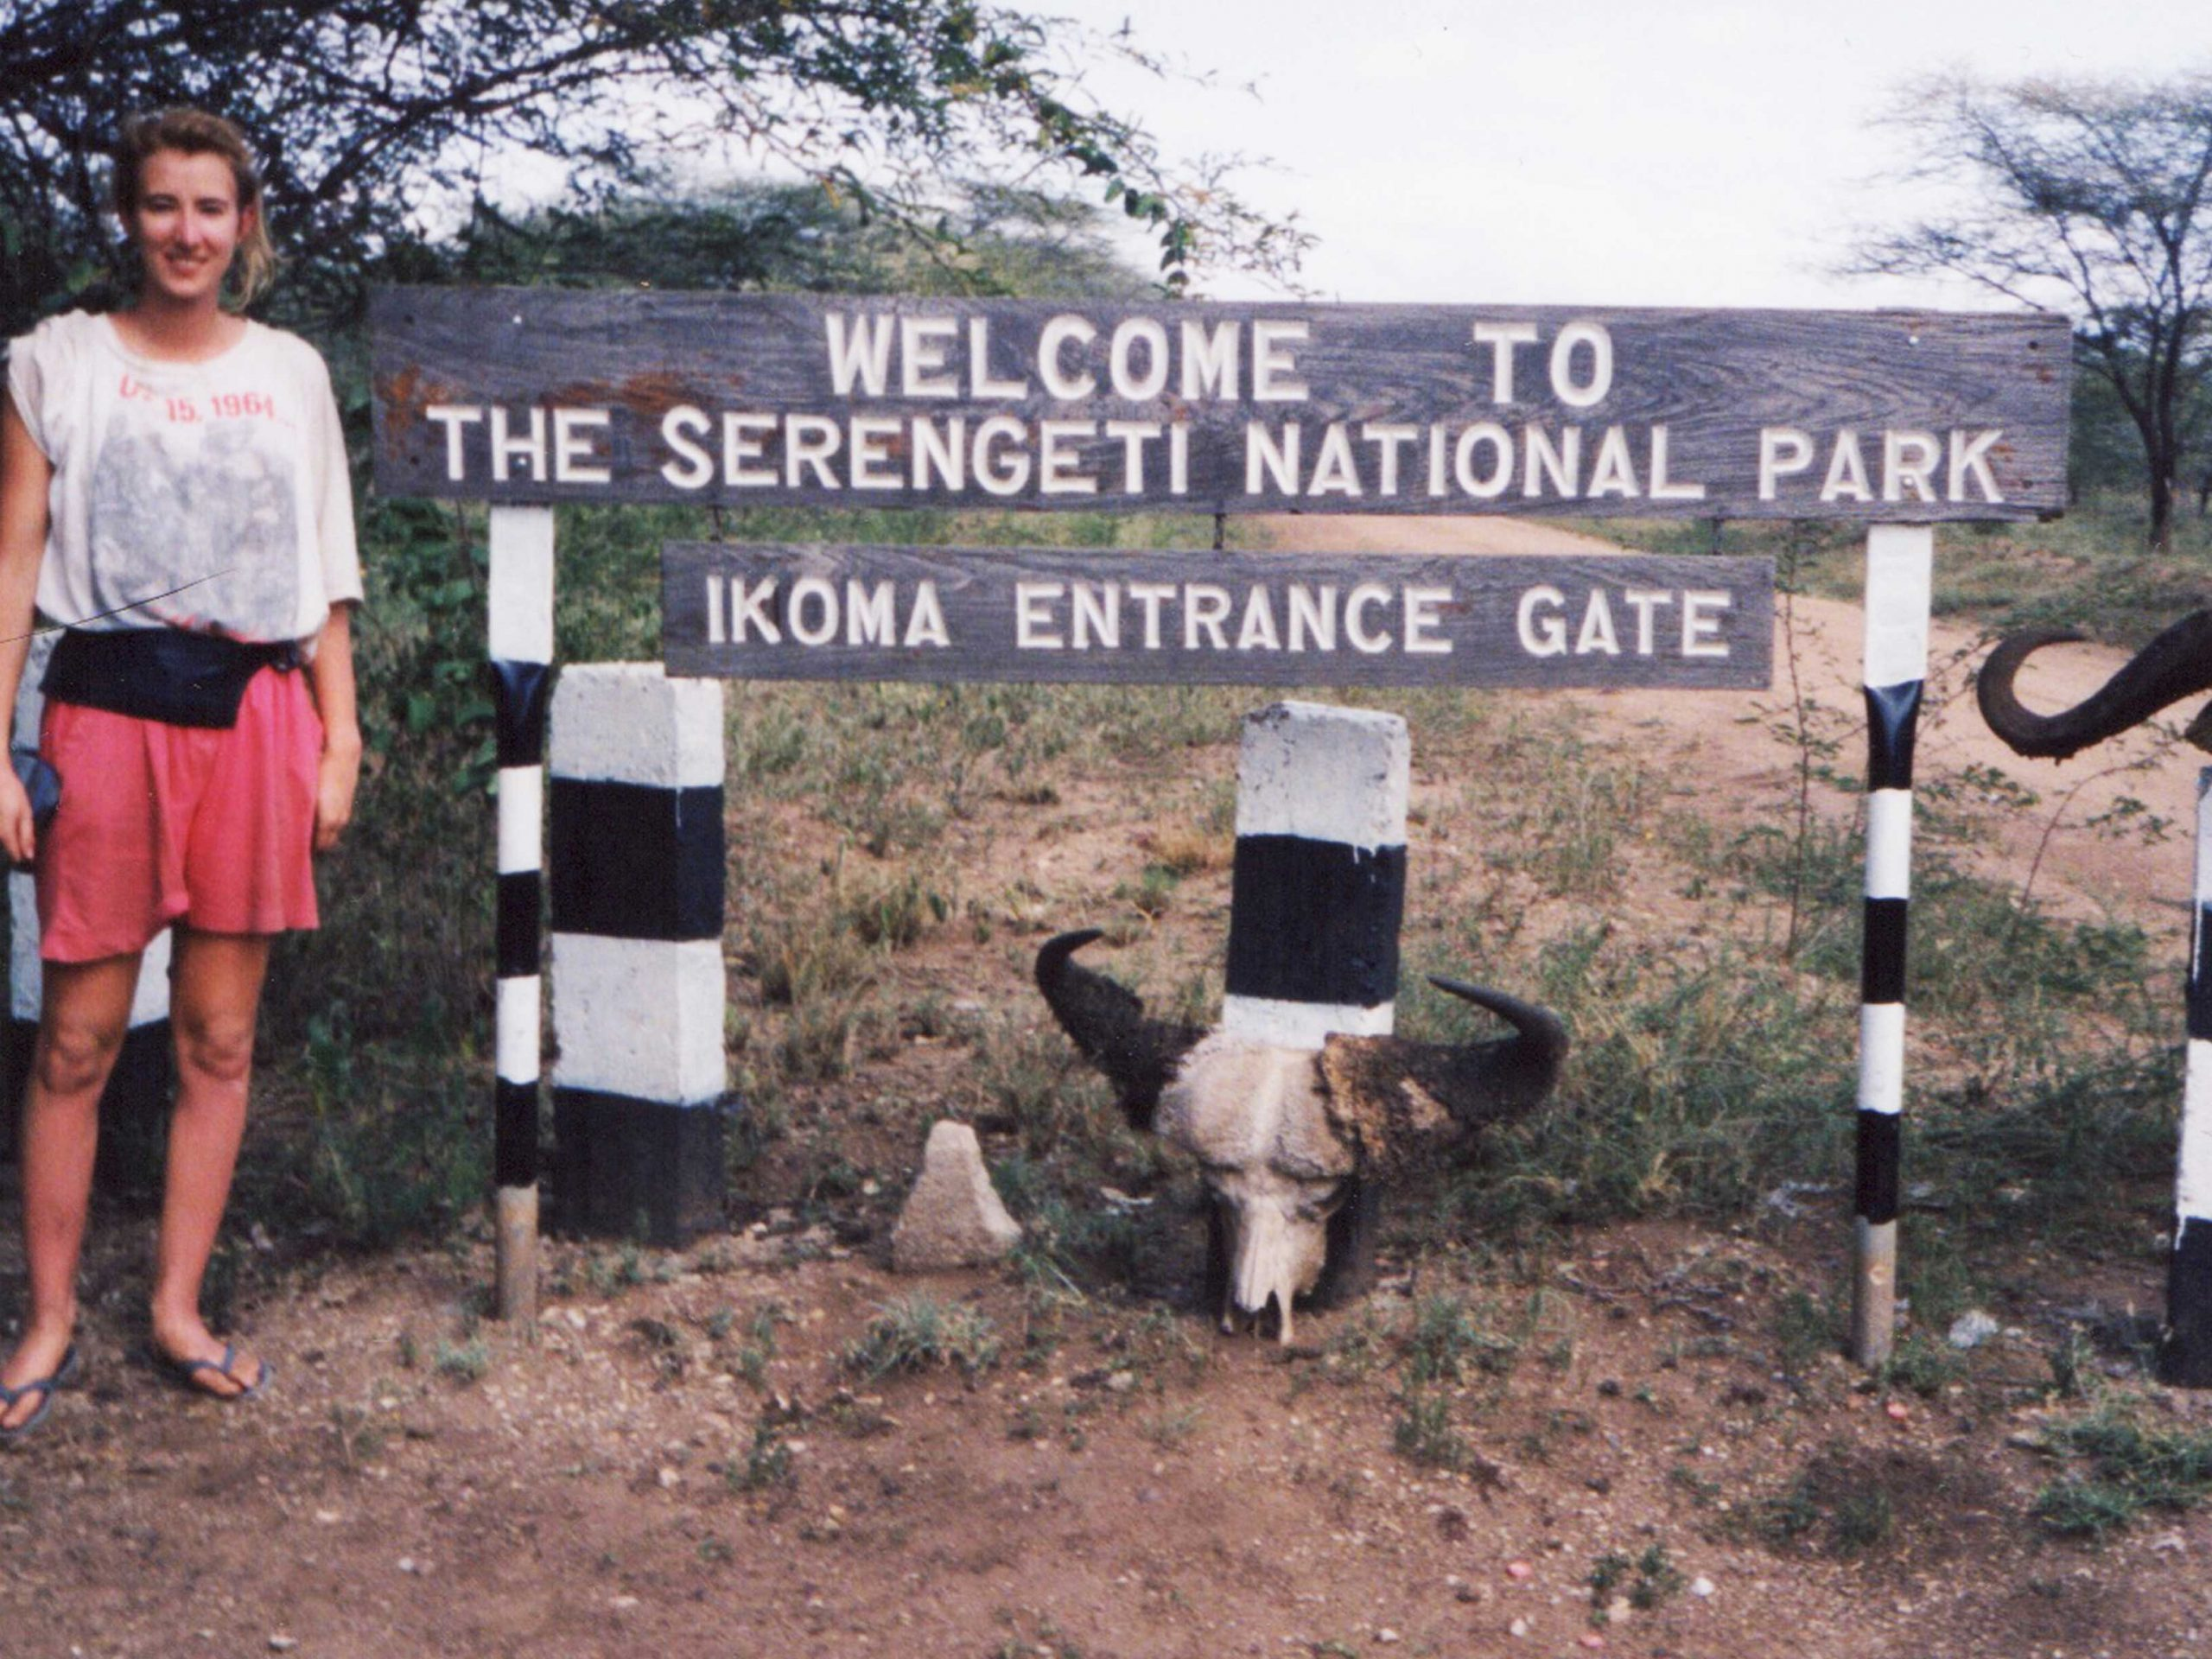 SueWhereWhyWhat standing by a wooden sign for the Serengeti National Park, Ikoma entrance, Africa 1992. 5 Ways to avoid being attacked by Lions!